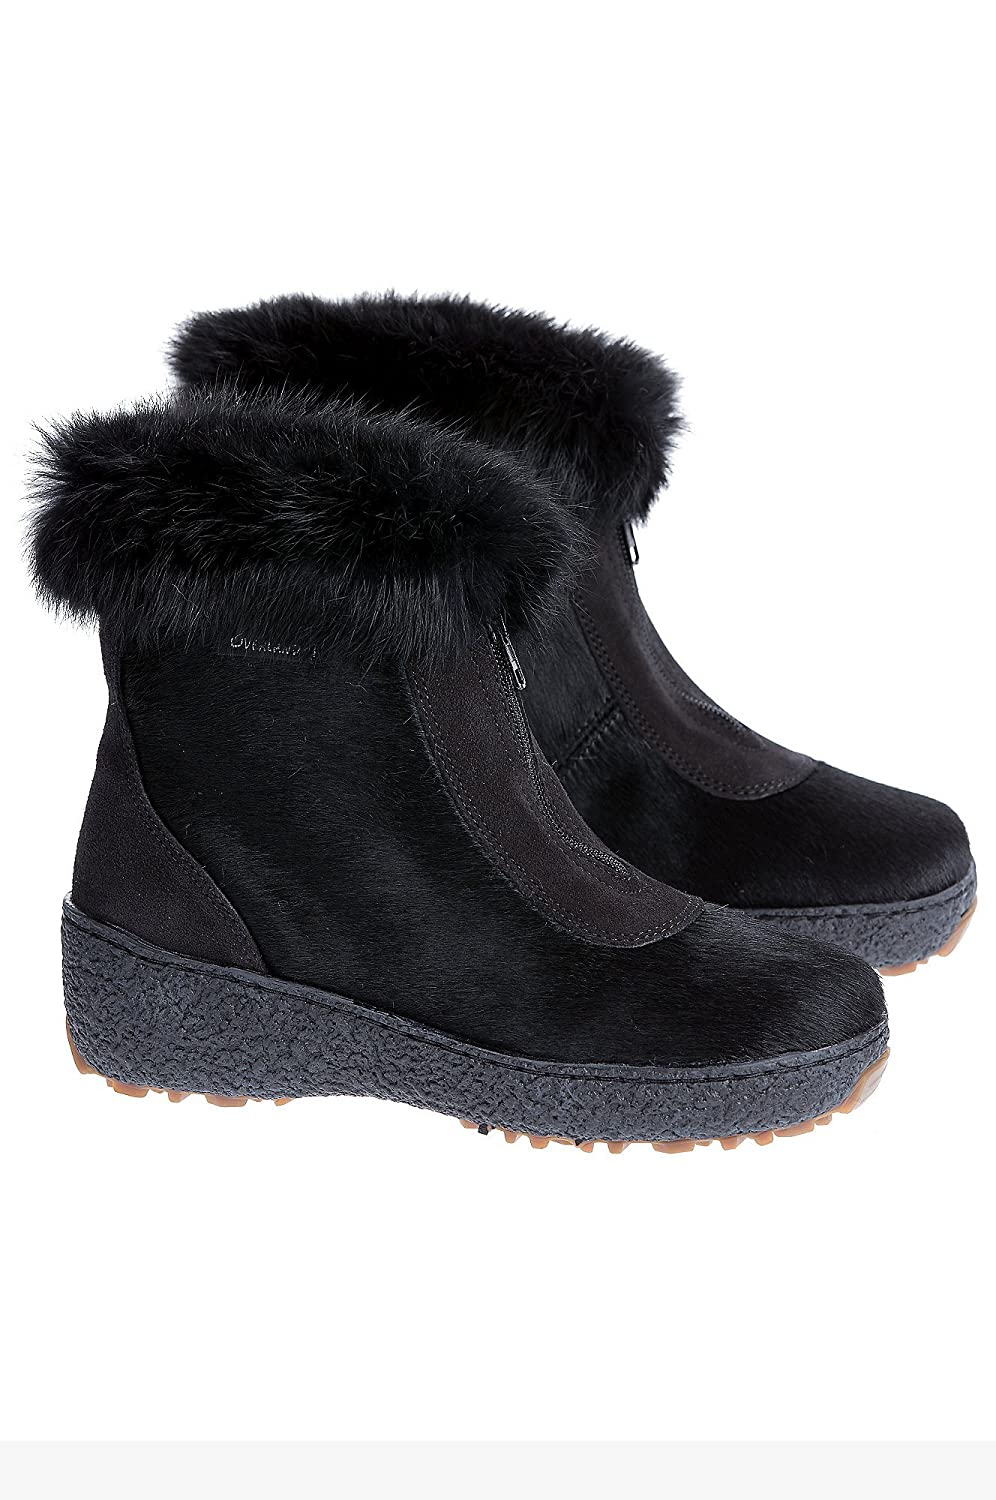 Retro Boots, Granny Boots, 70s Boots Womens Rose Shearling-Lined Rabbit Fur and Calfskin Boots $289.00 AT vintagedancer.com